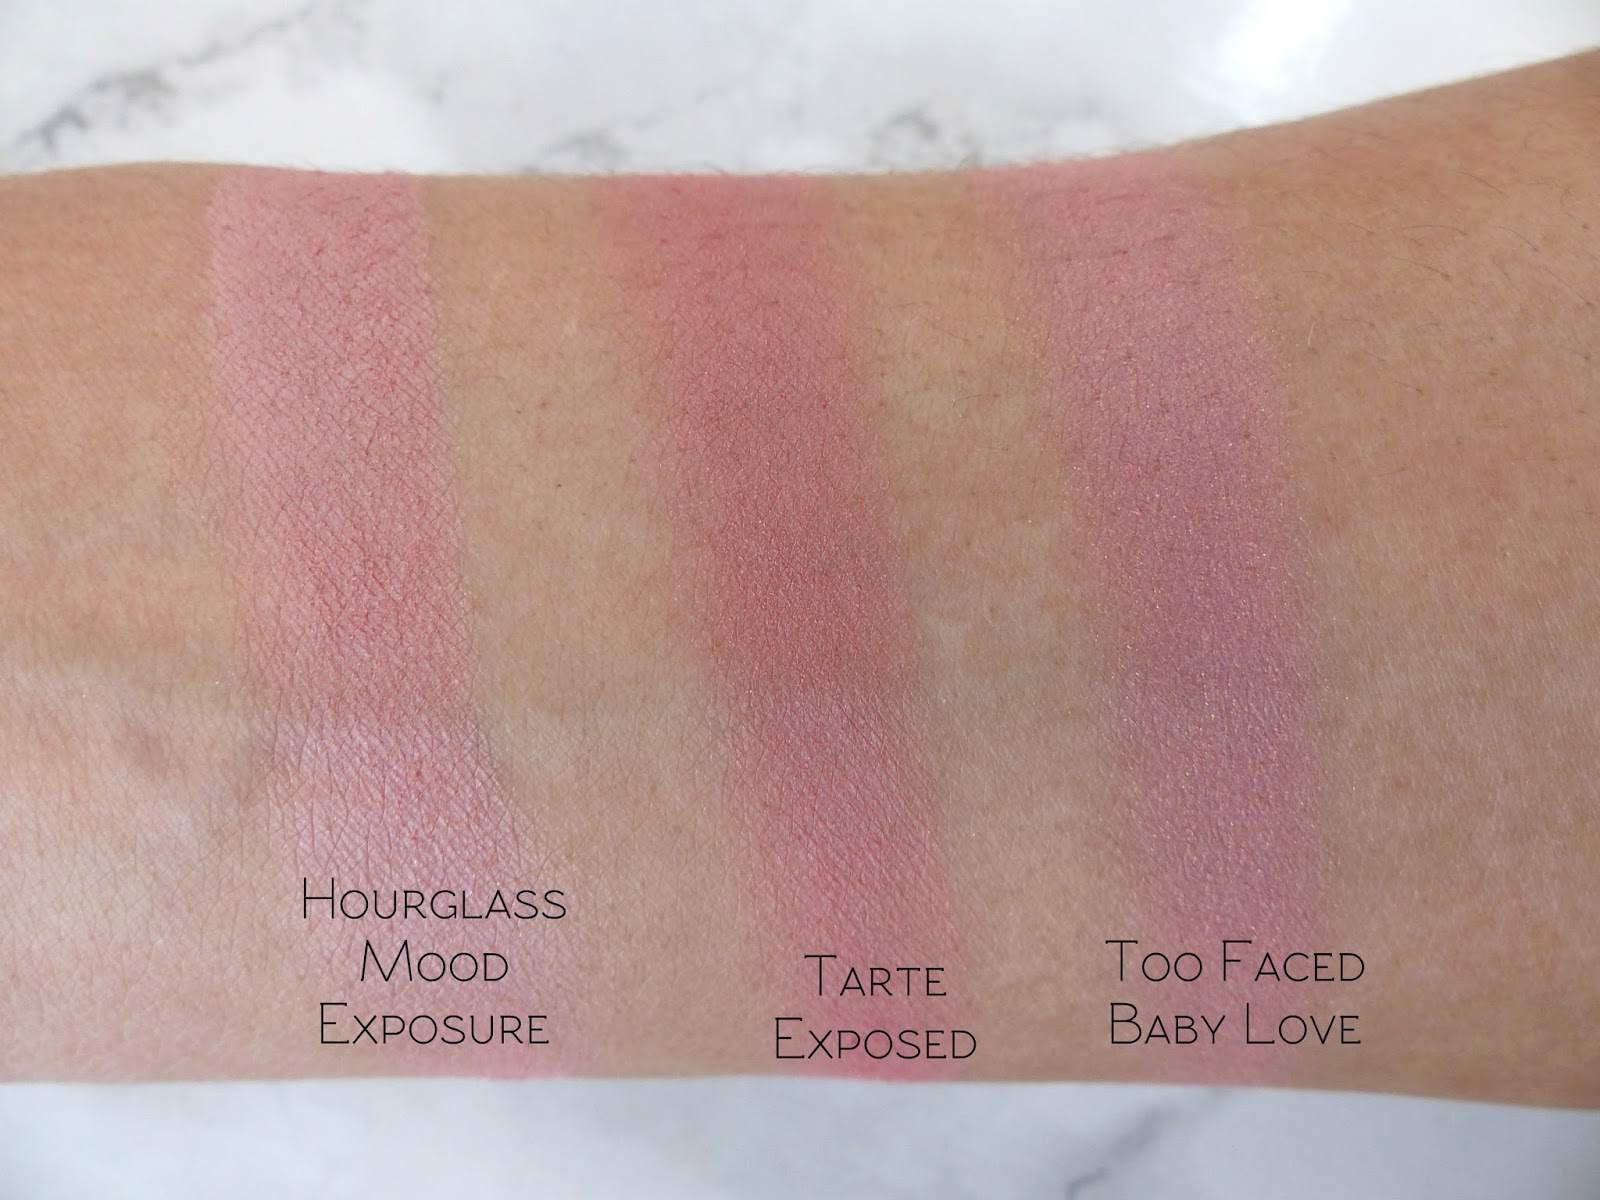 Tarte stunner vs tarte stunner dupe comparison -  Or Lips And Work Nicely For An Everyday Face Adding A Natural Flush Of Colour Again Powder Formulas Tend To Last Best On My Skin So All My Picks Fit